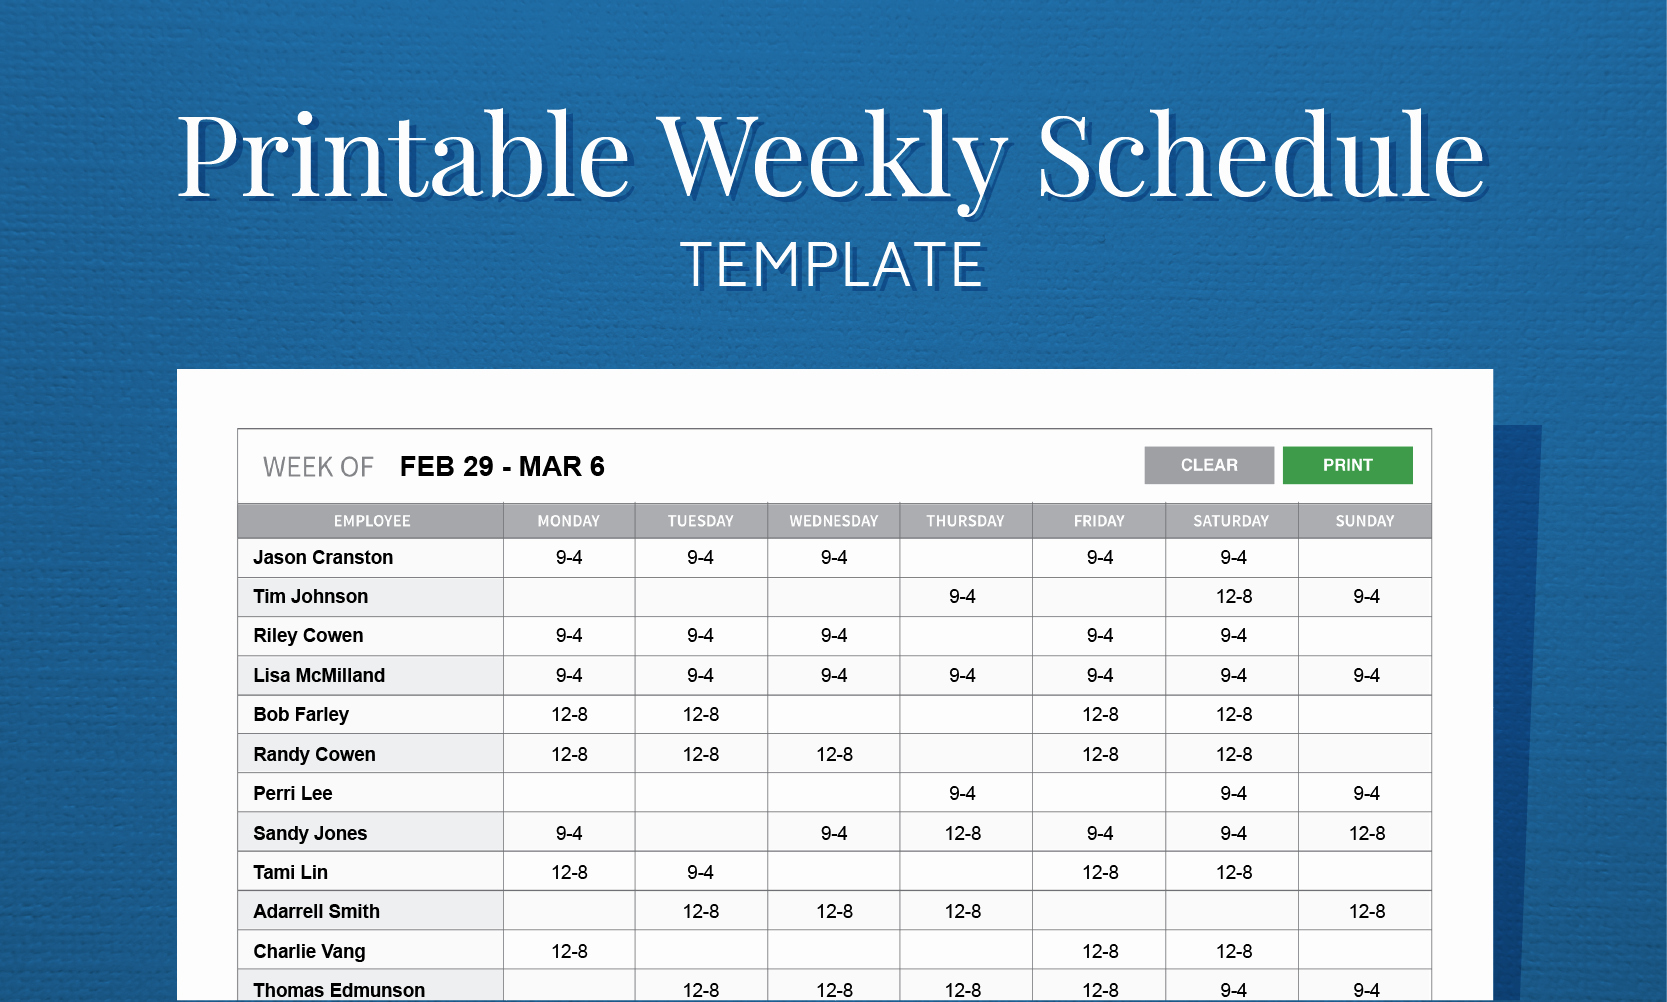 Schedule Of Availability Template Inspirational Free Printable Weekly Work Schedule Template for Employee